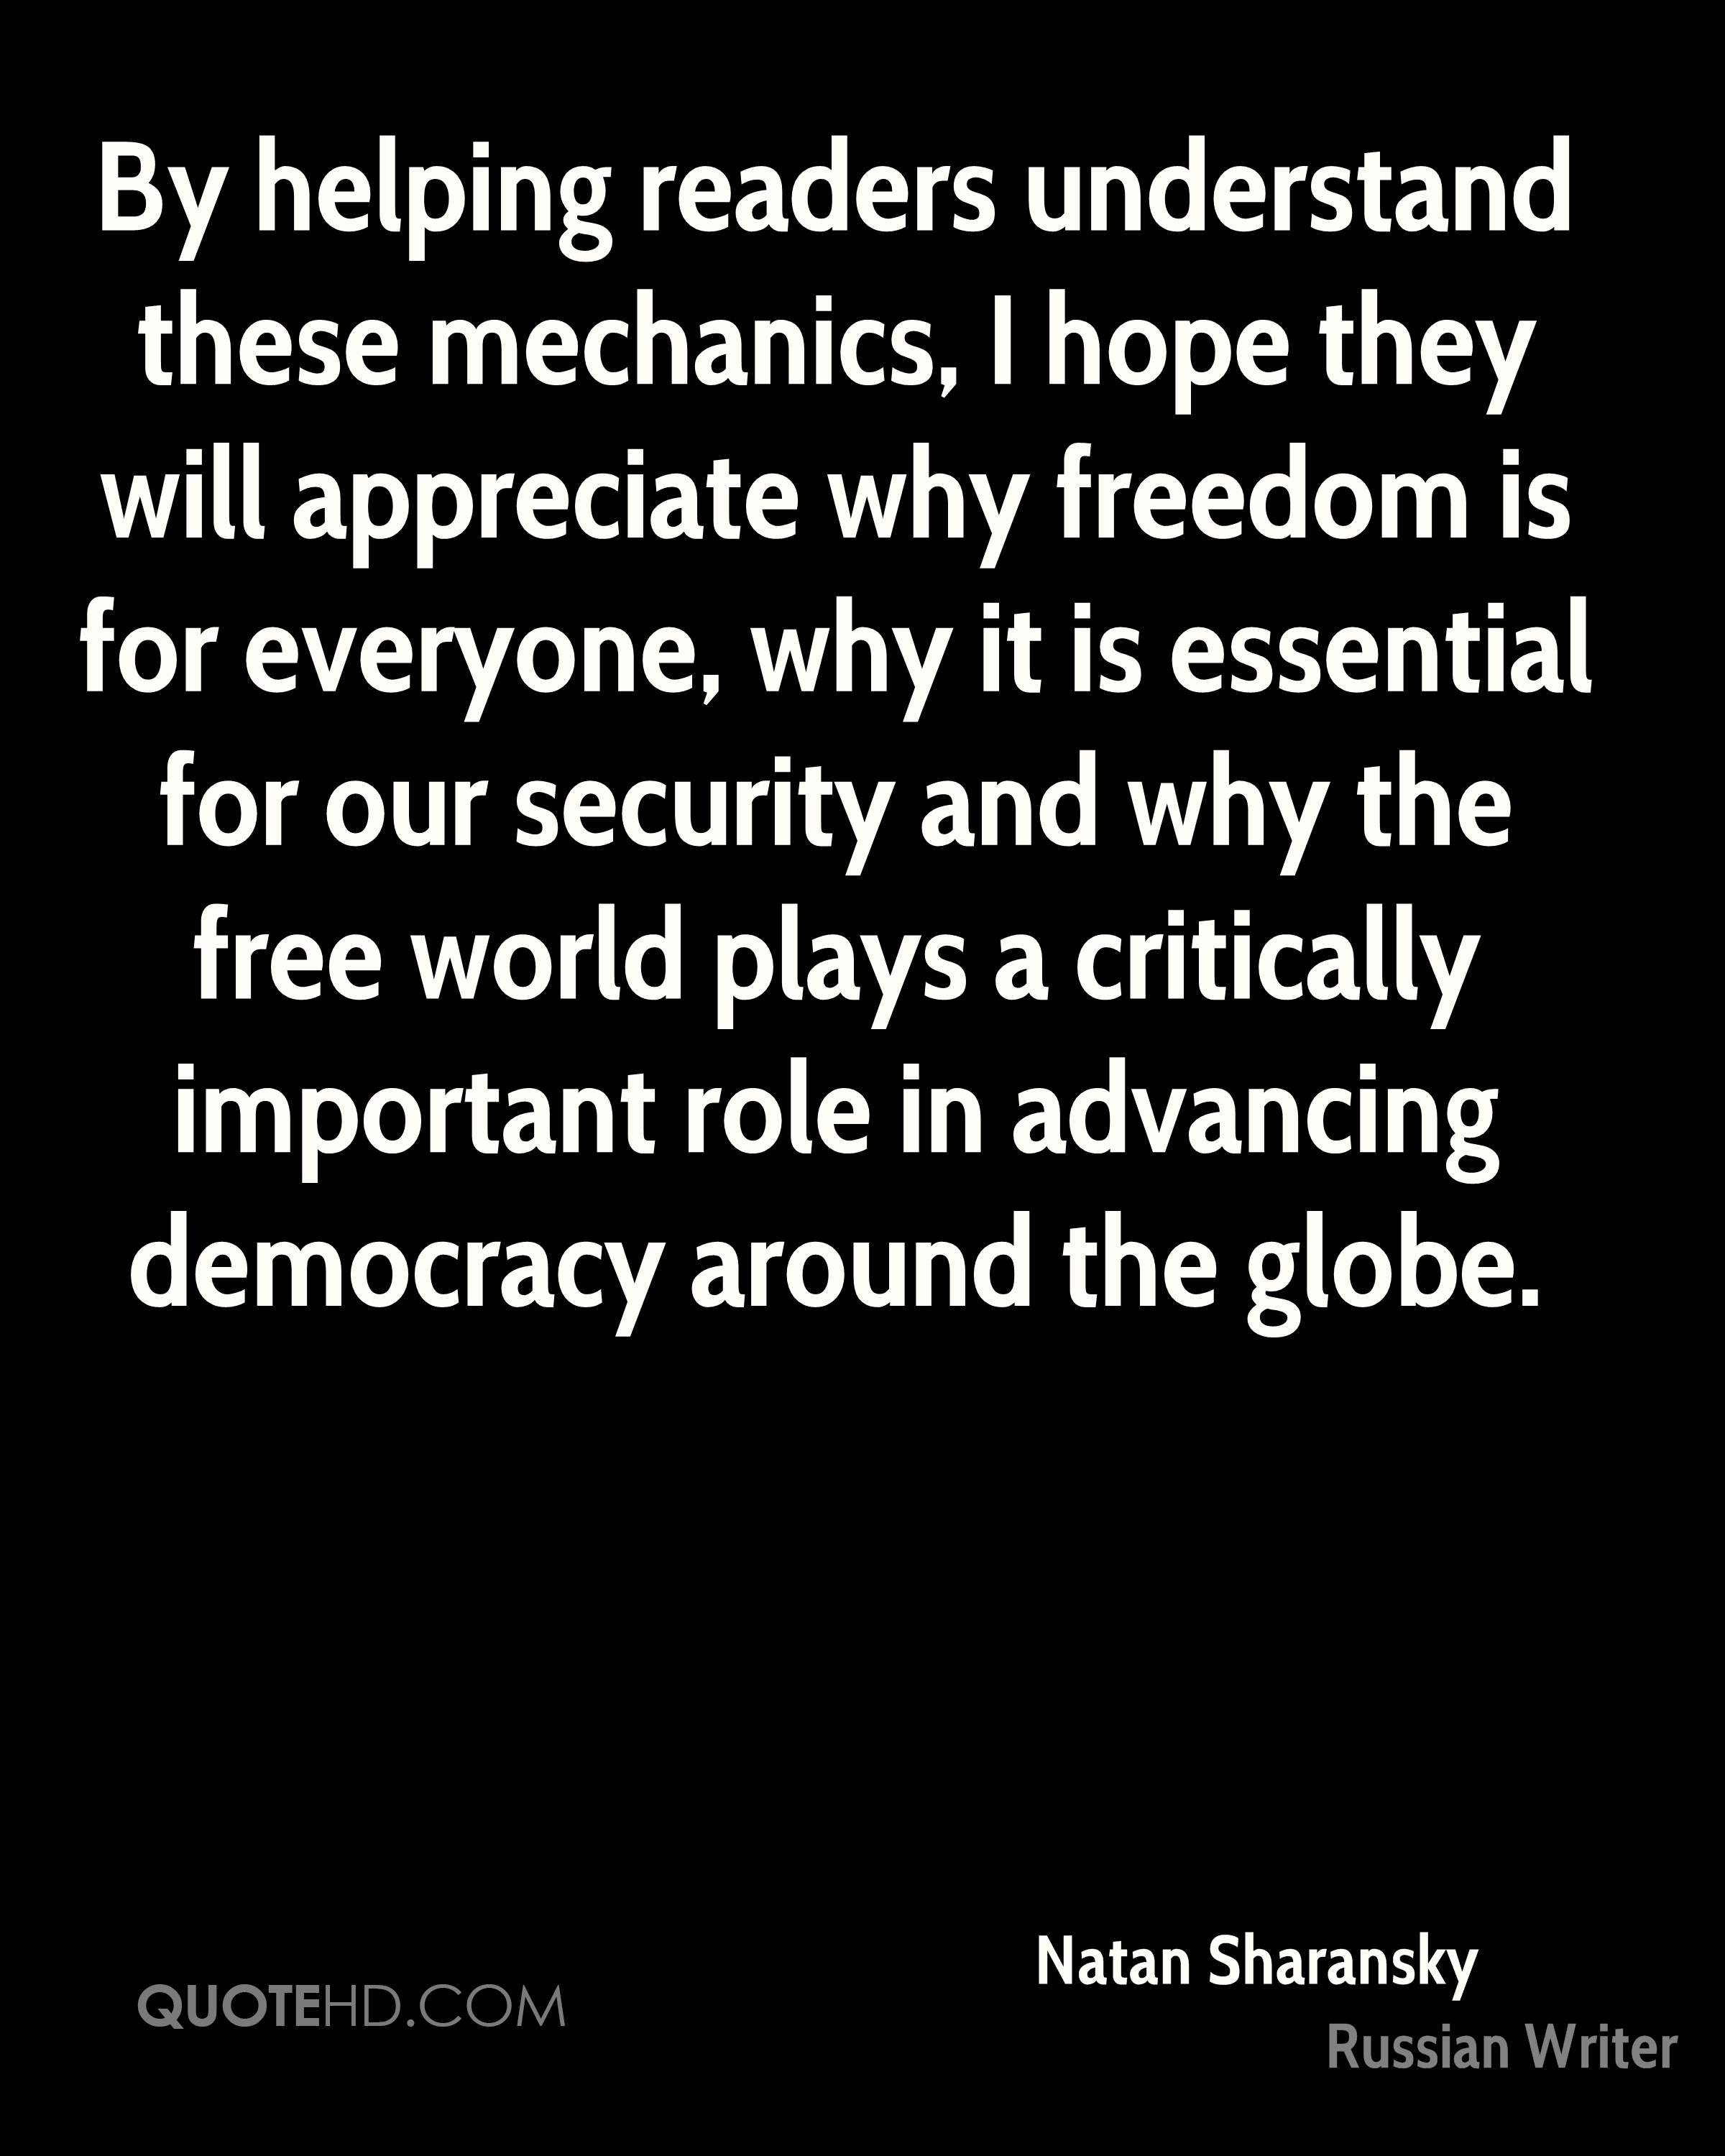 By helping readers understand these mechanics, I hope they will appreciate why freedom is for everyone, why it is essential for our security and why the free world plays a critically important role in advancing democracy around the globe.